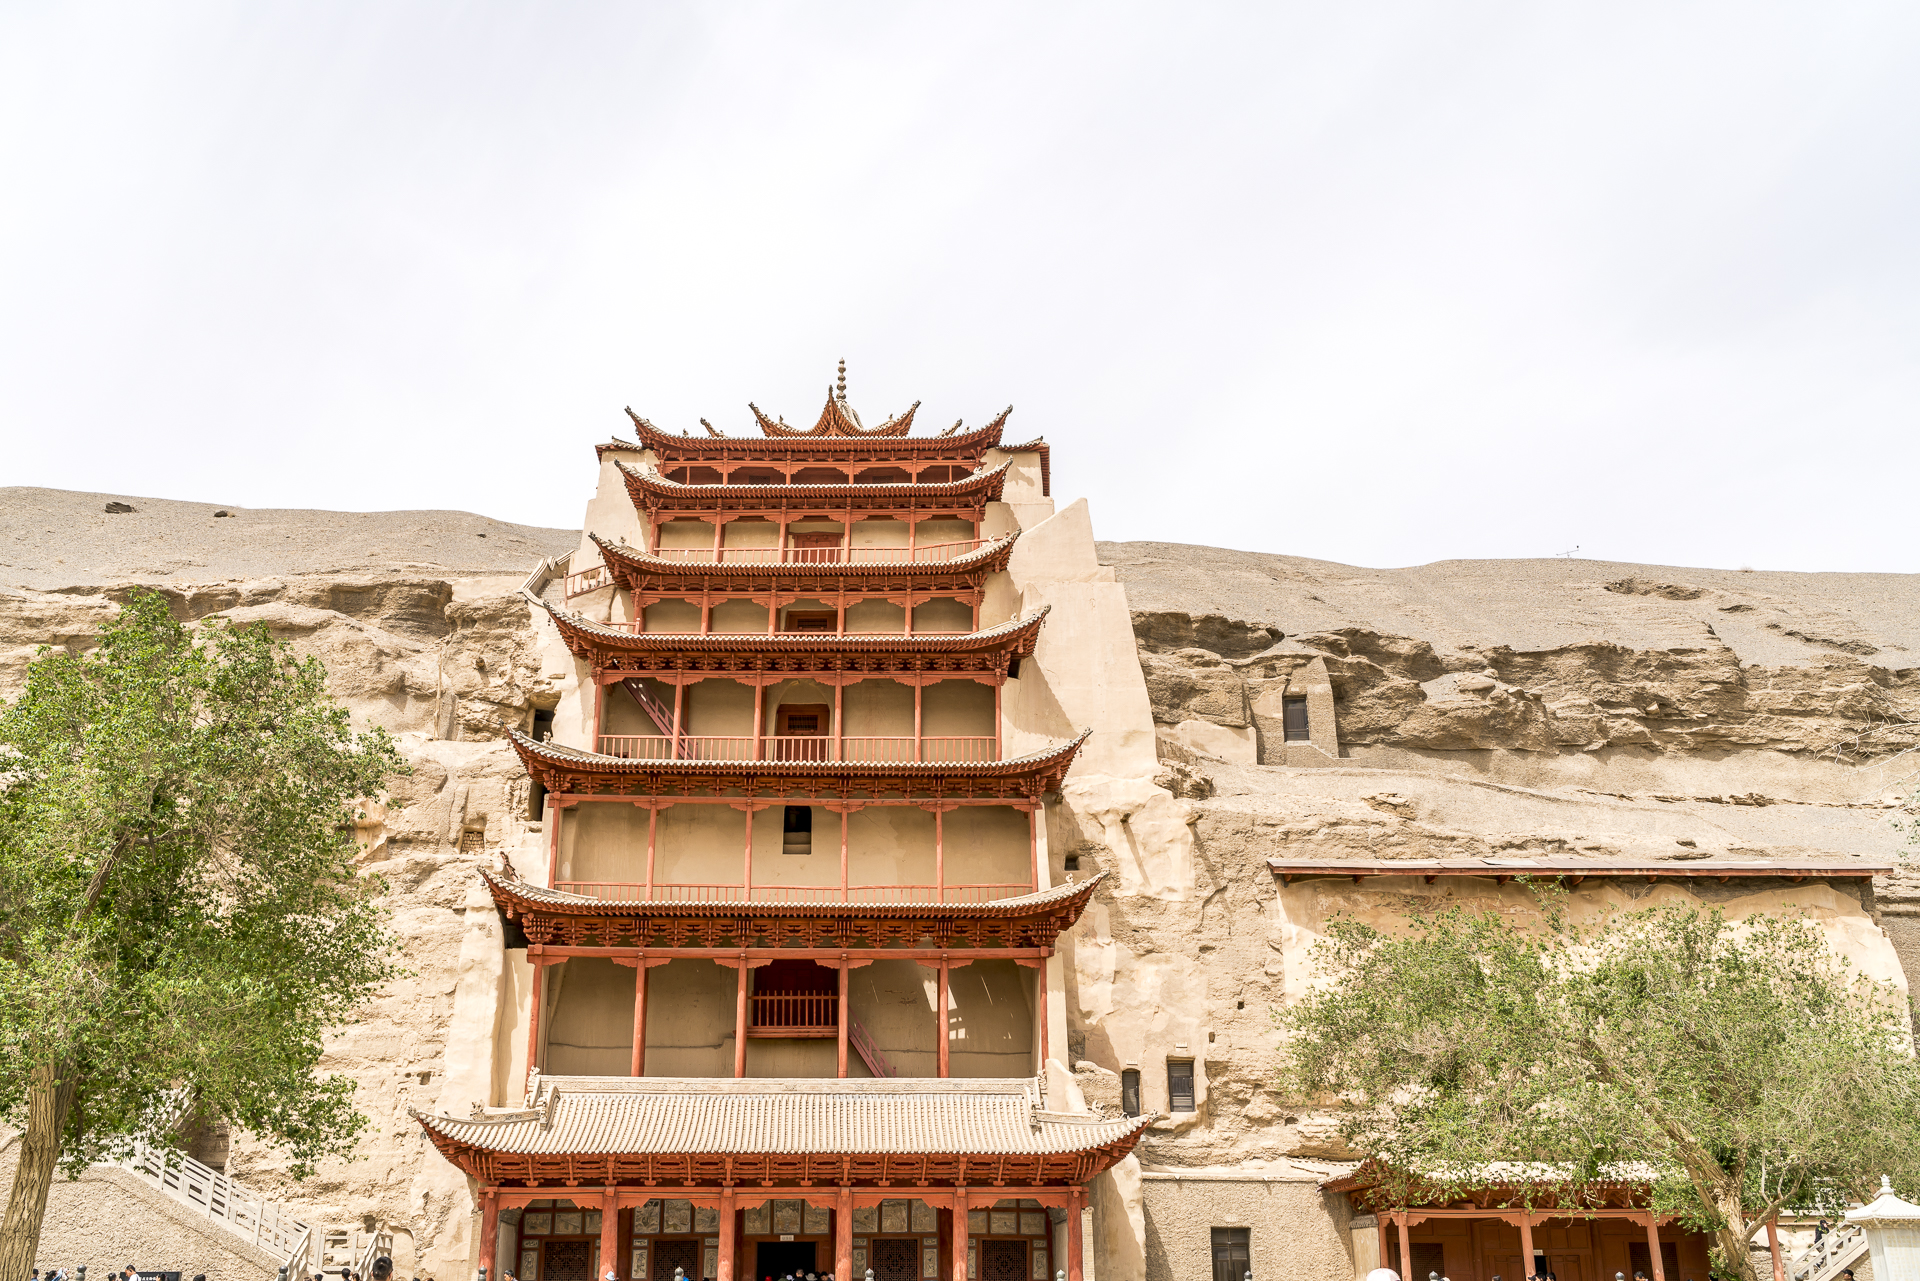 Mogao Grotte in Dunhuang